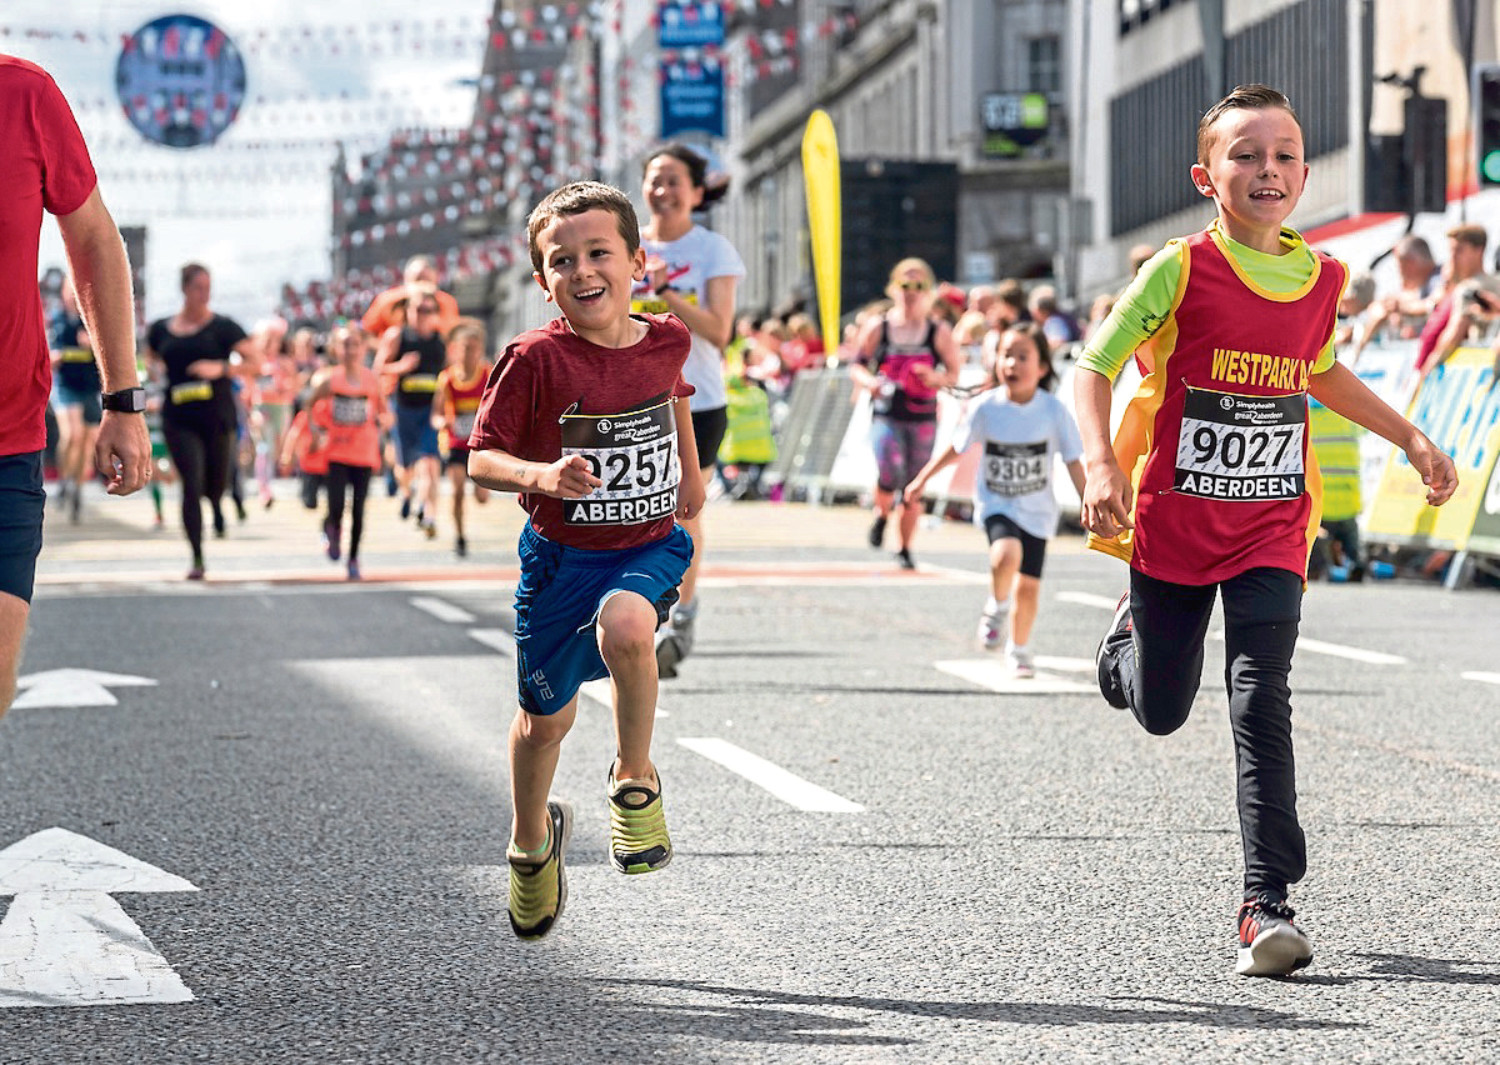 Less than 50 spots are available for the Simplyhealth run